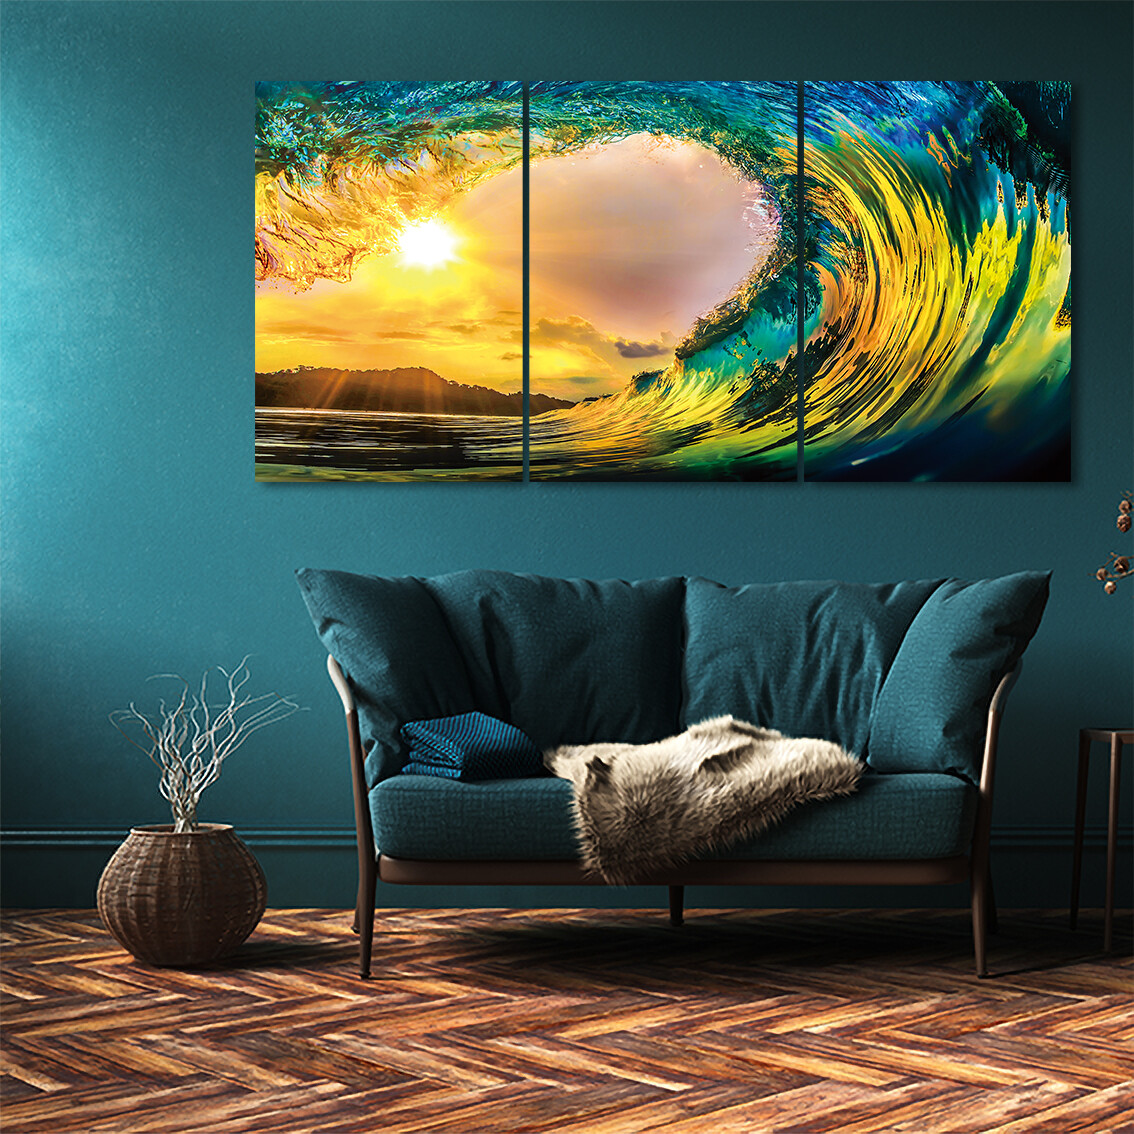 Tropical Sunset and Ocean Waves (3 Panels)  - Modern Luxury Wall art Printed on Acrylic Glass - Frameless and Ready to Hang